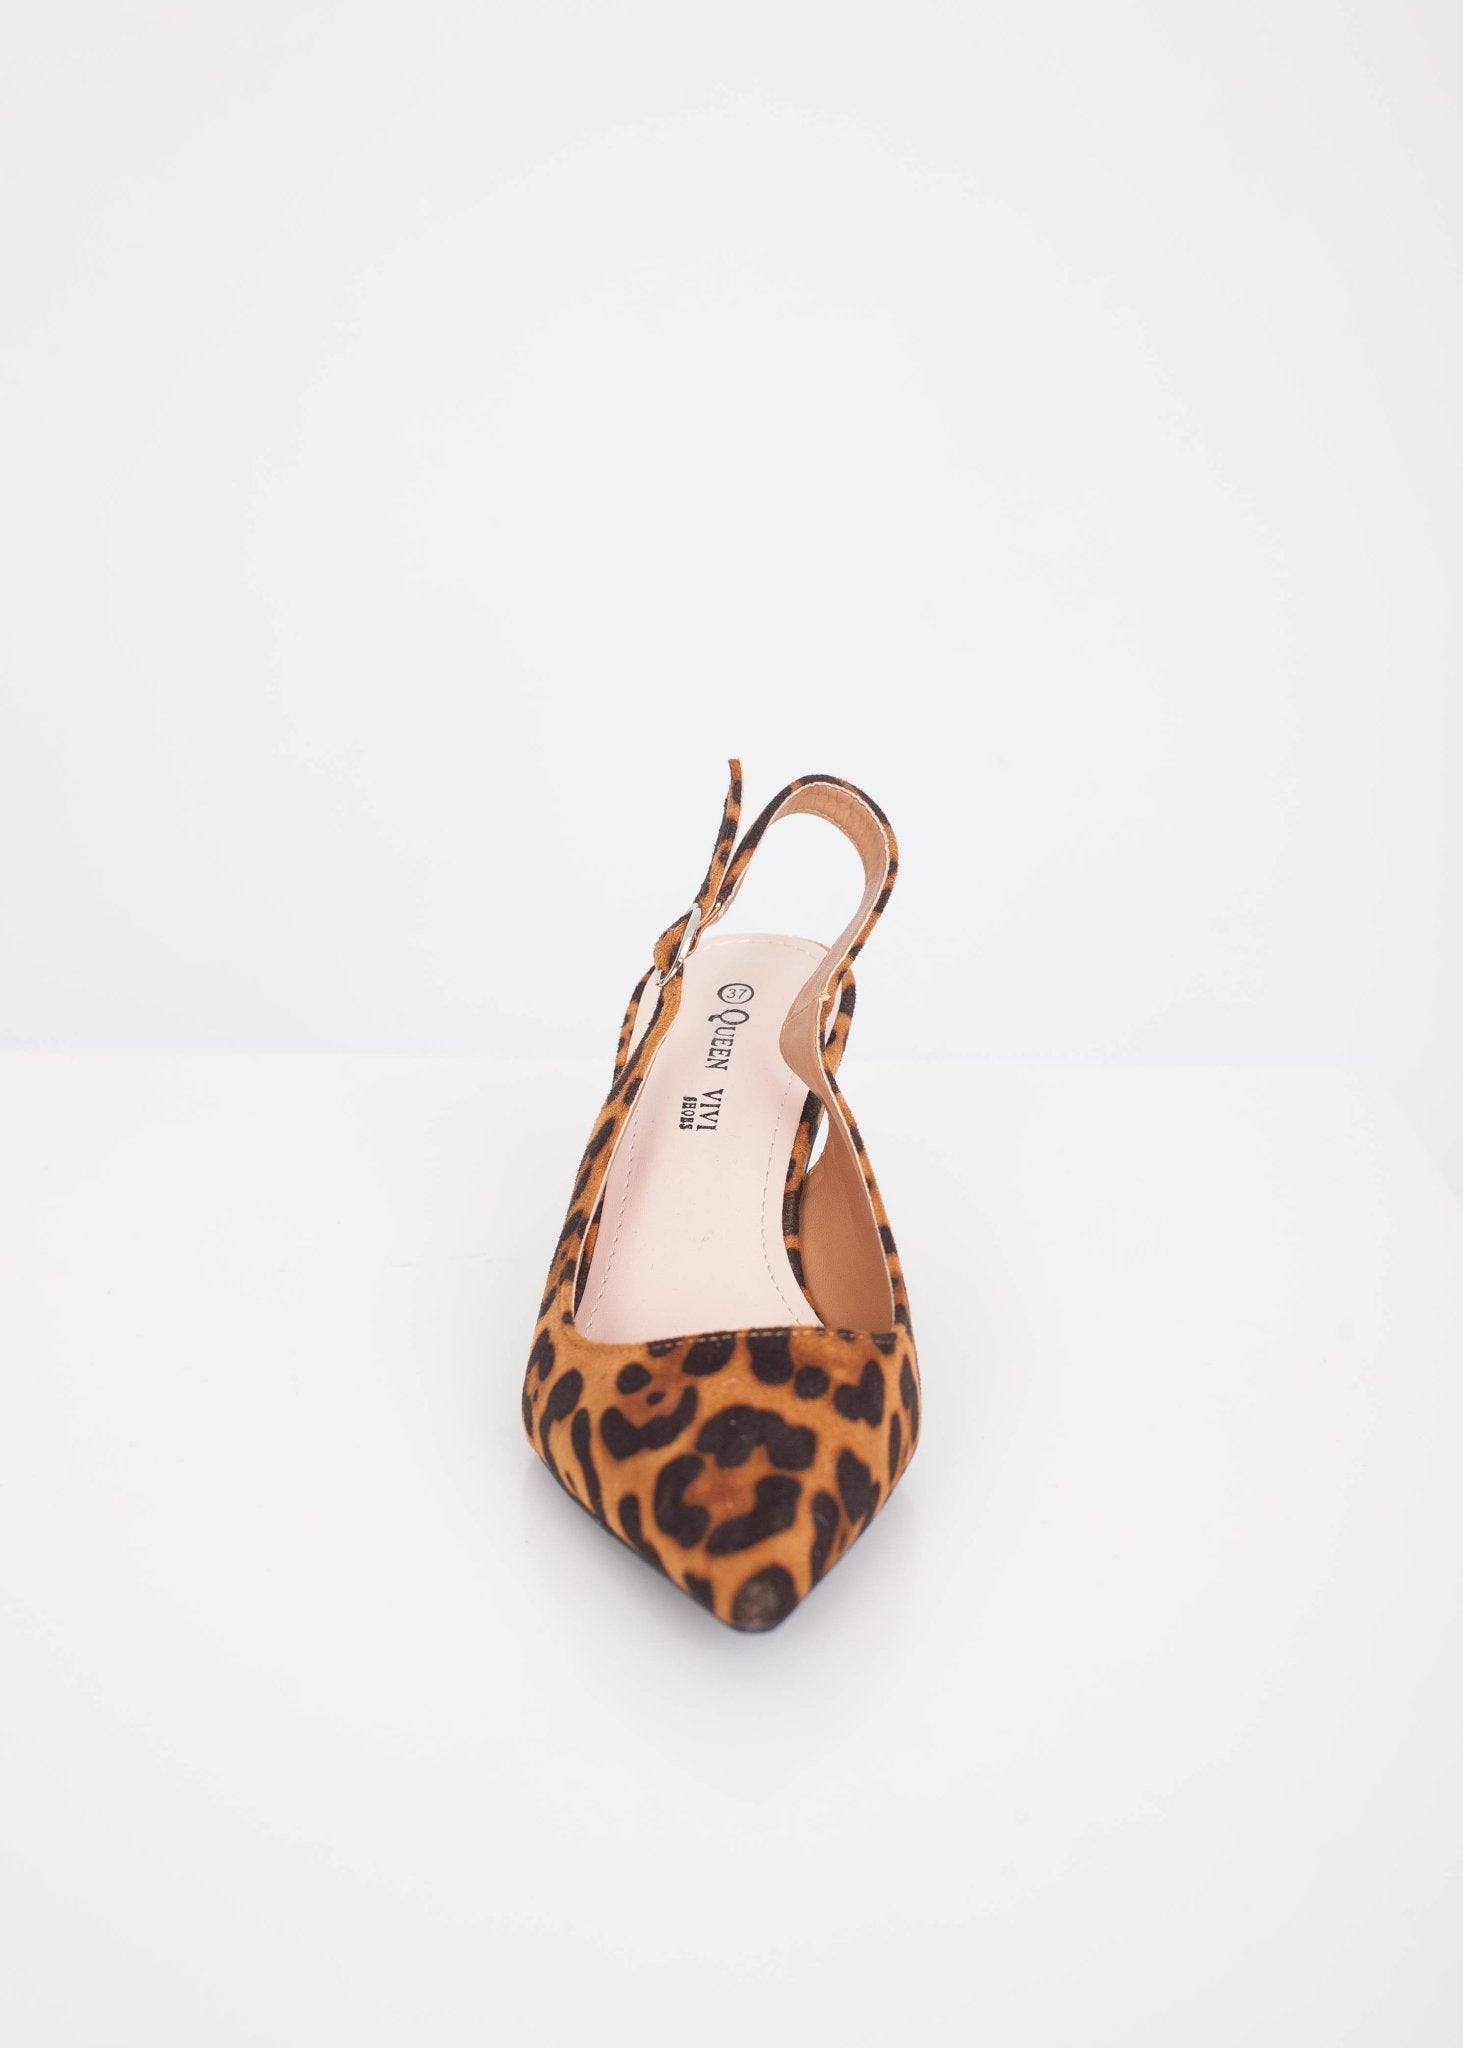 Emilia Leopard Print Kitten Heels - The Walk in Wardrobe